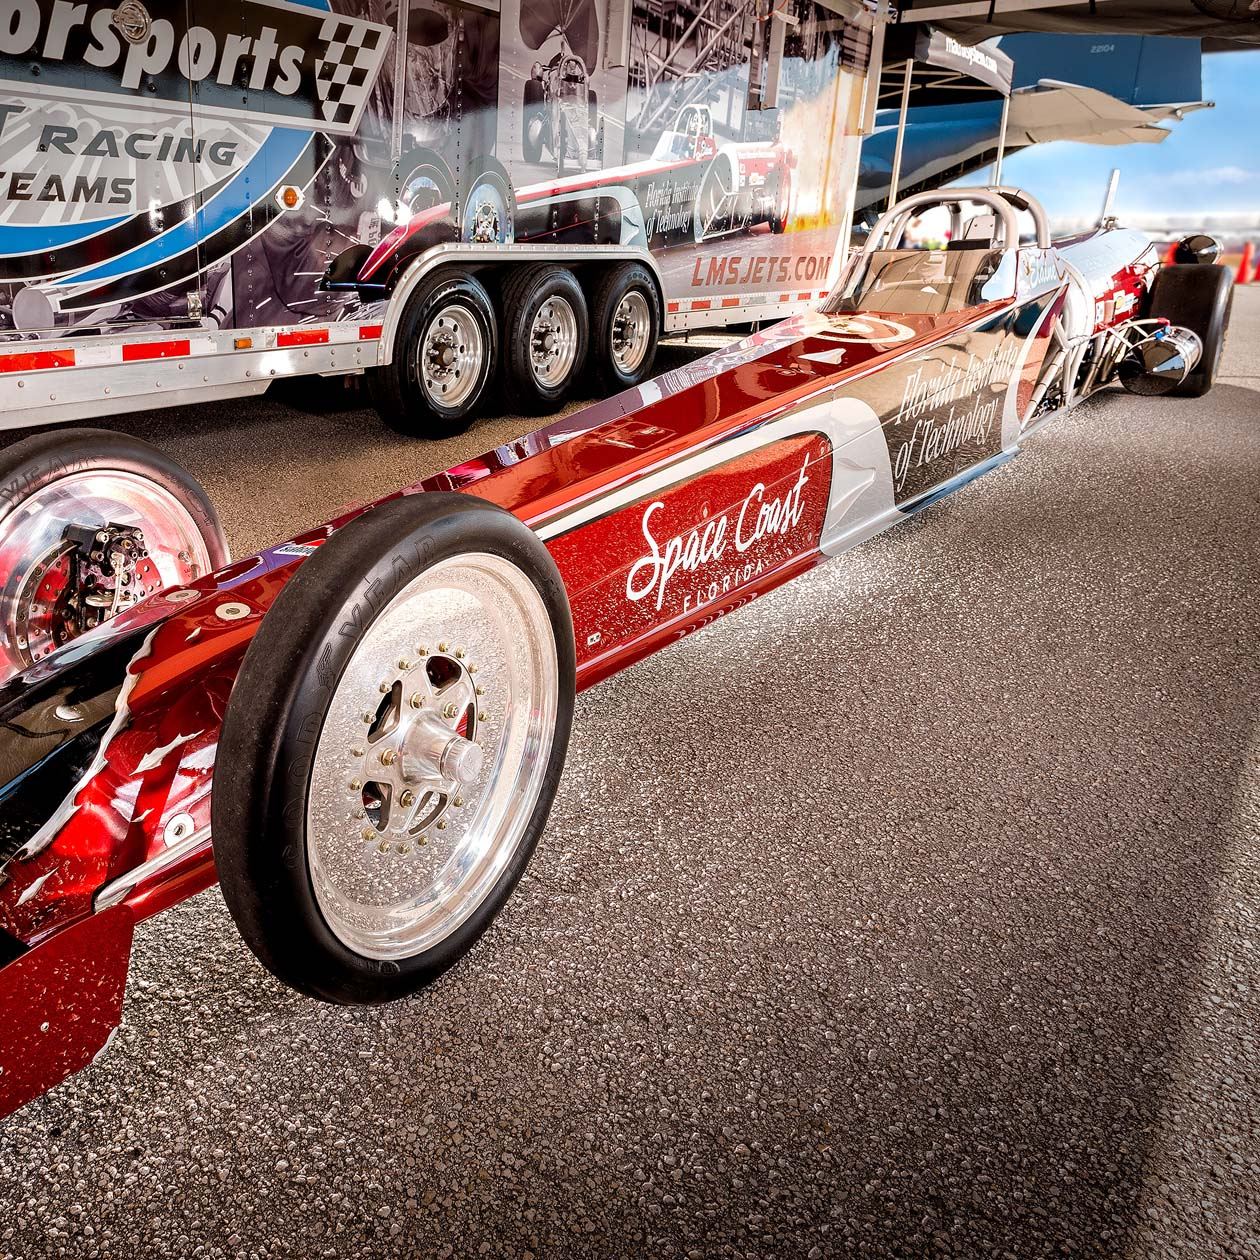 LMS Jets Dragster